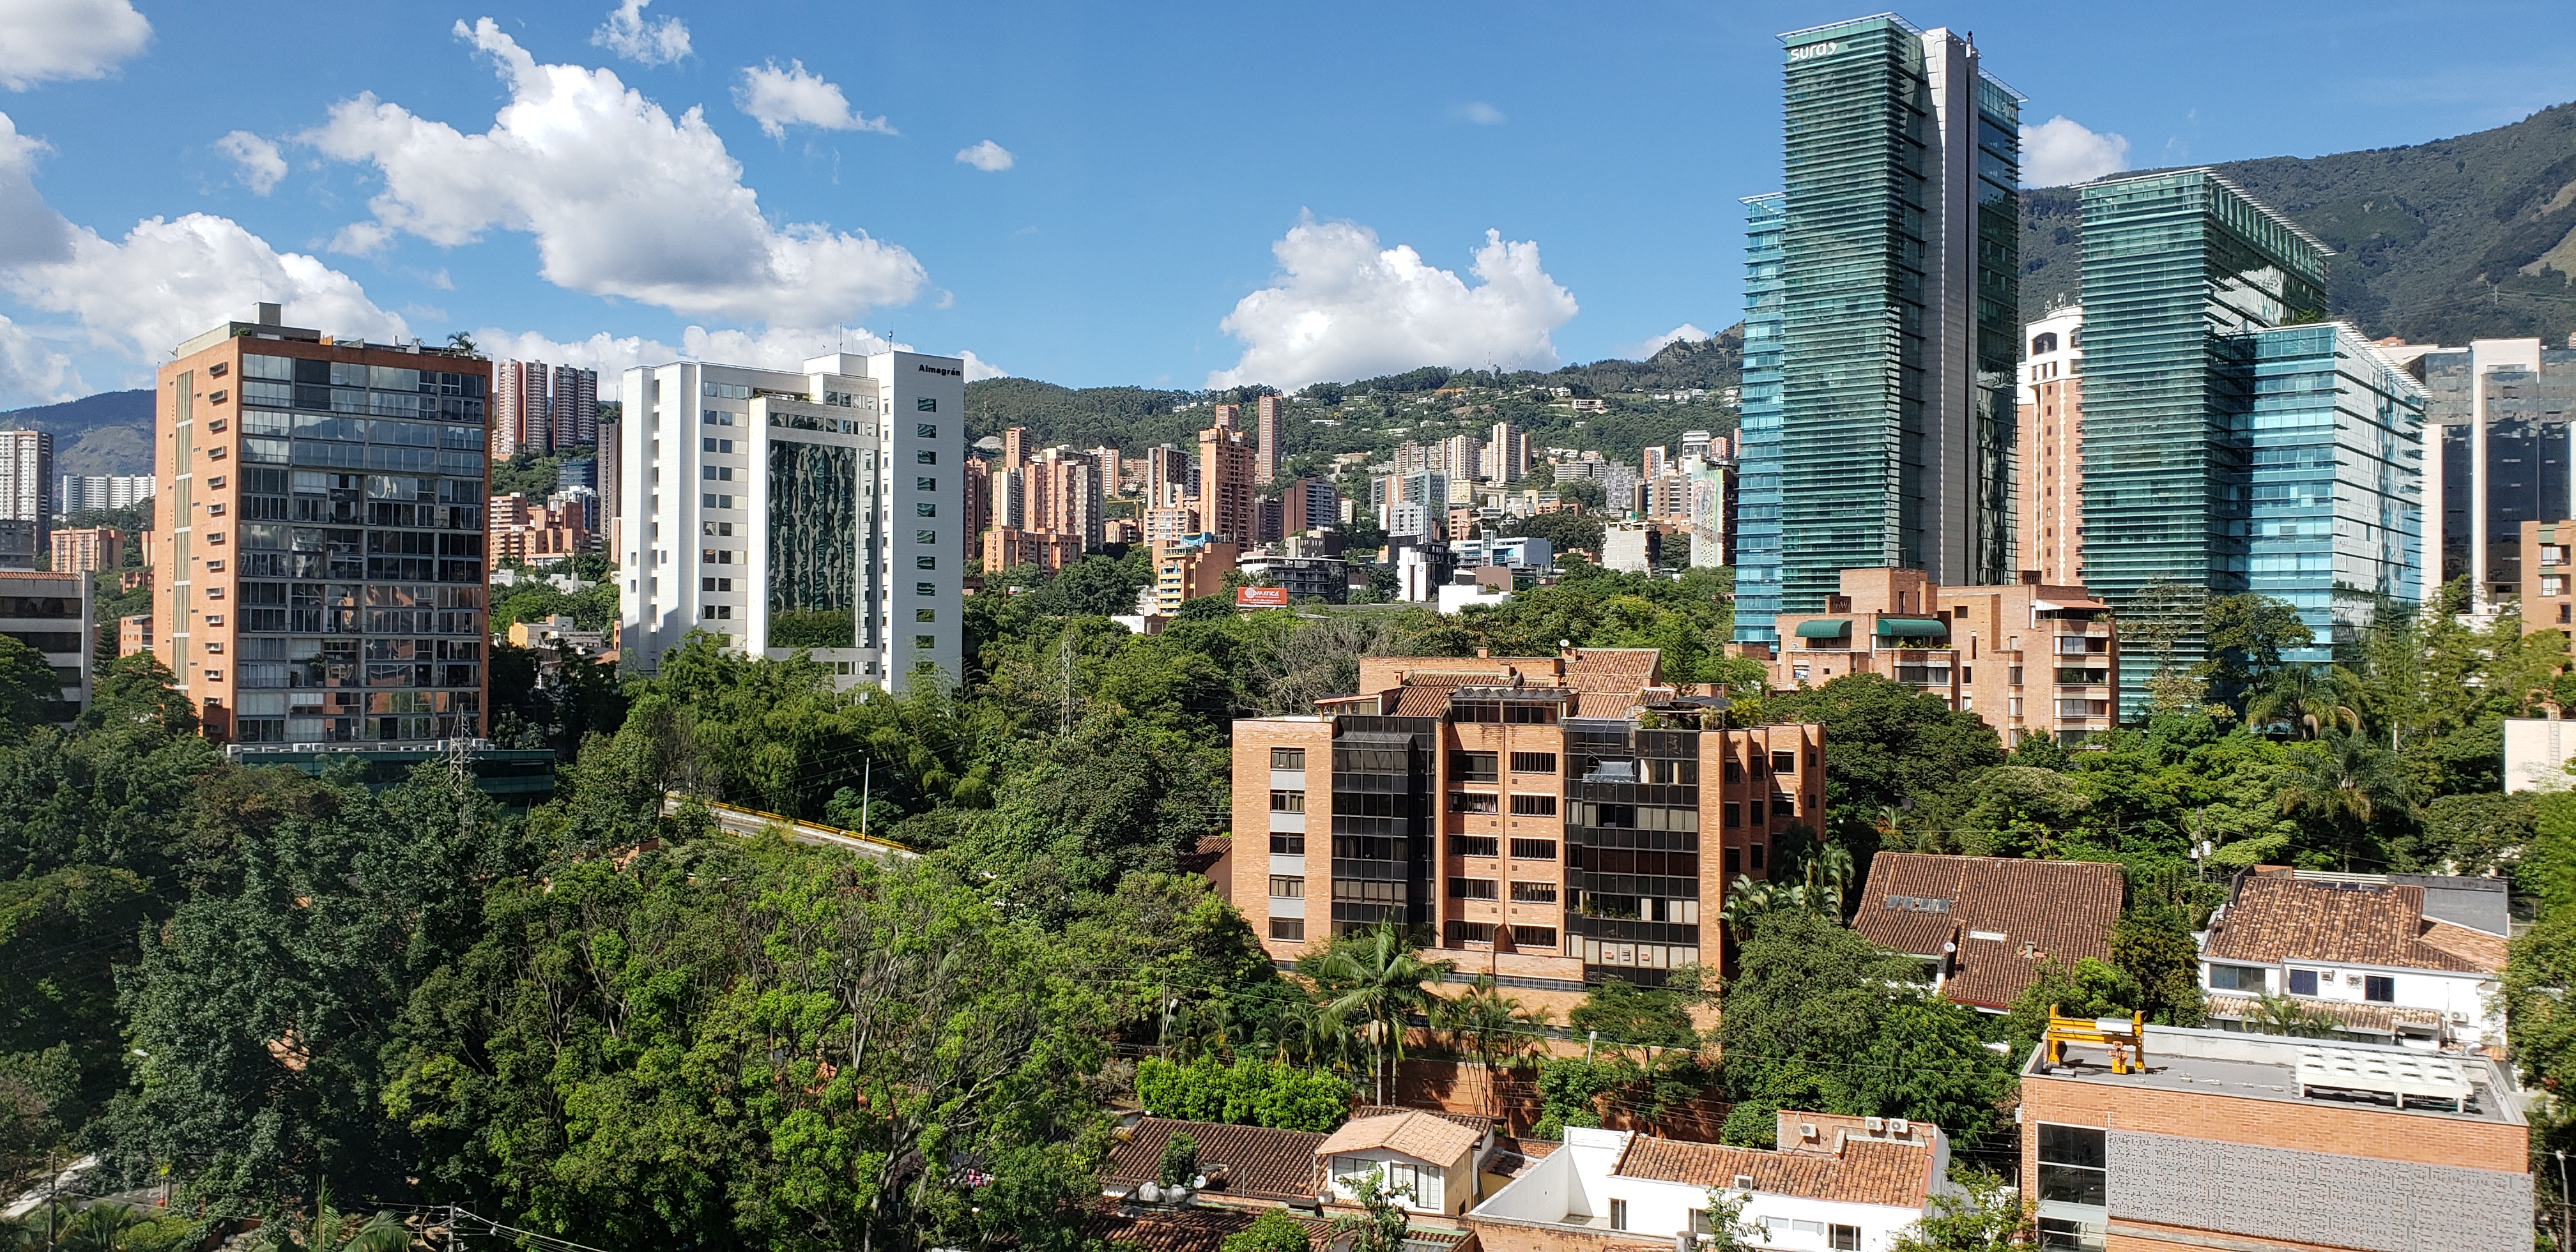 View of Medellin - Why Visiting Medellin Should Be on Your Wish List